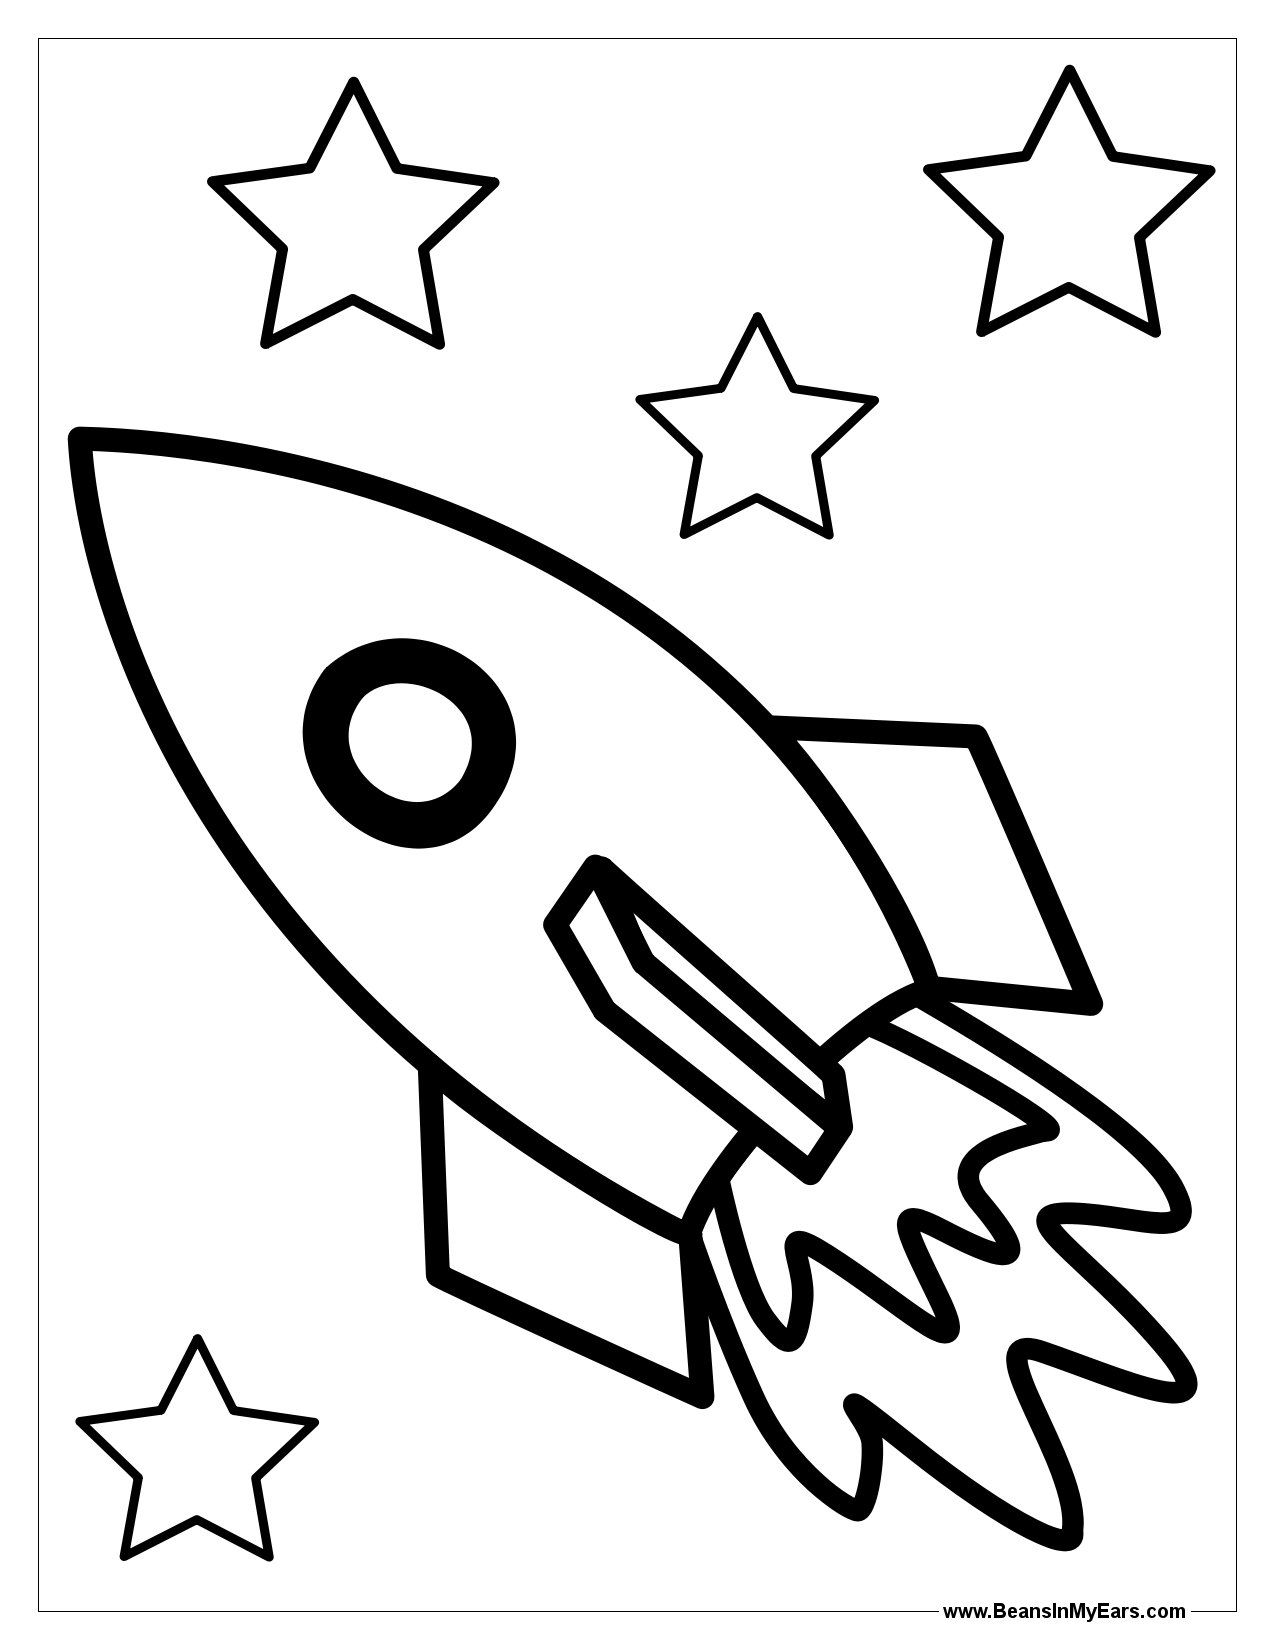 Free Rocket Ship Coloring Pages With Archives Rocket Coloring Sheet Space Coloring Pages Easy Coloring Pages